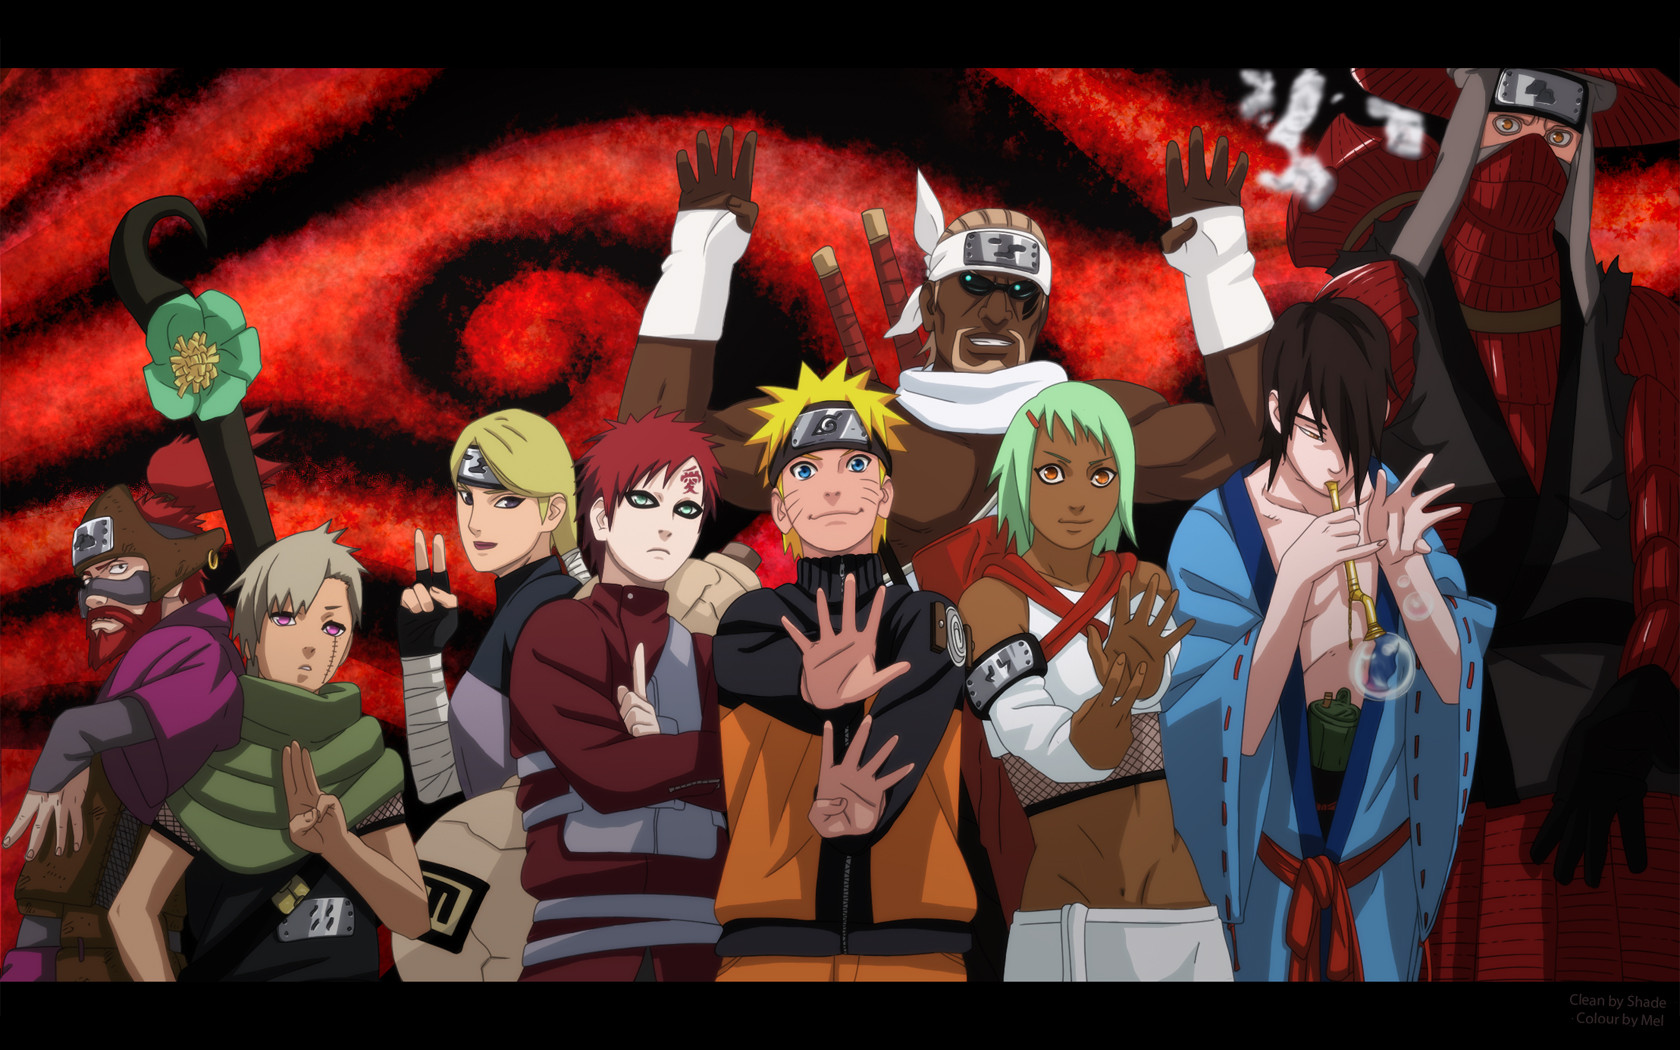 Best ideas about Wallpapers Naruto on Pinterest  Wallpapers de 1680x1050